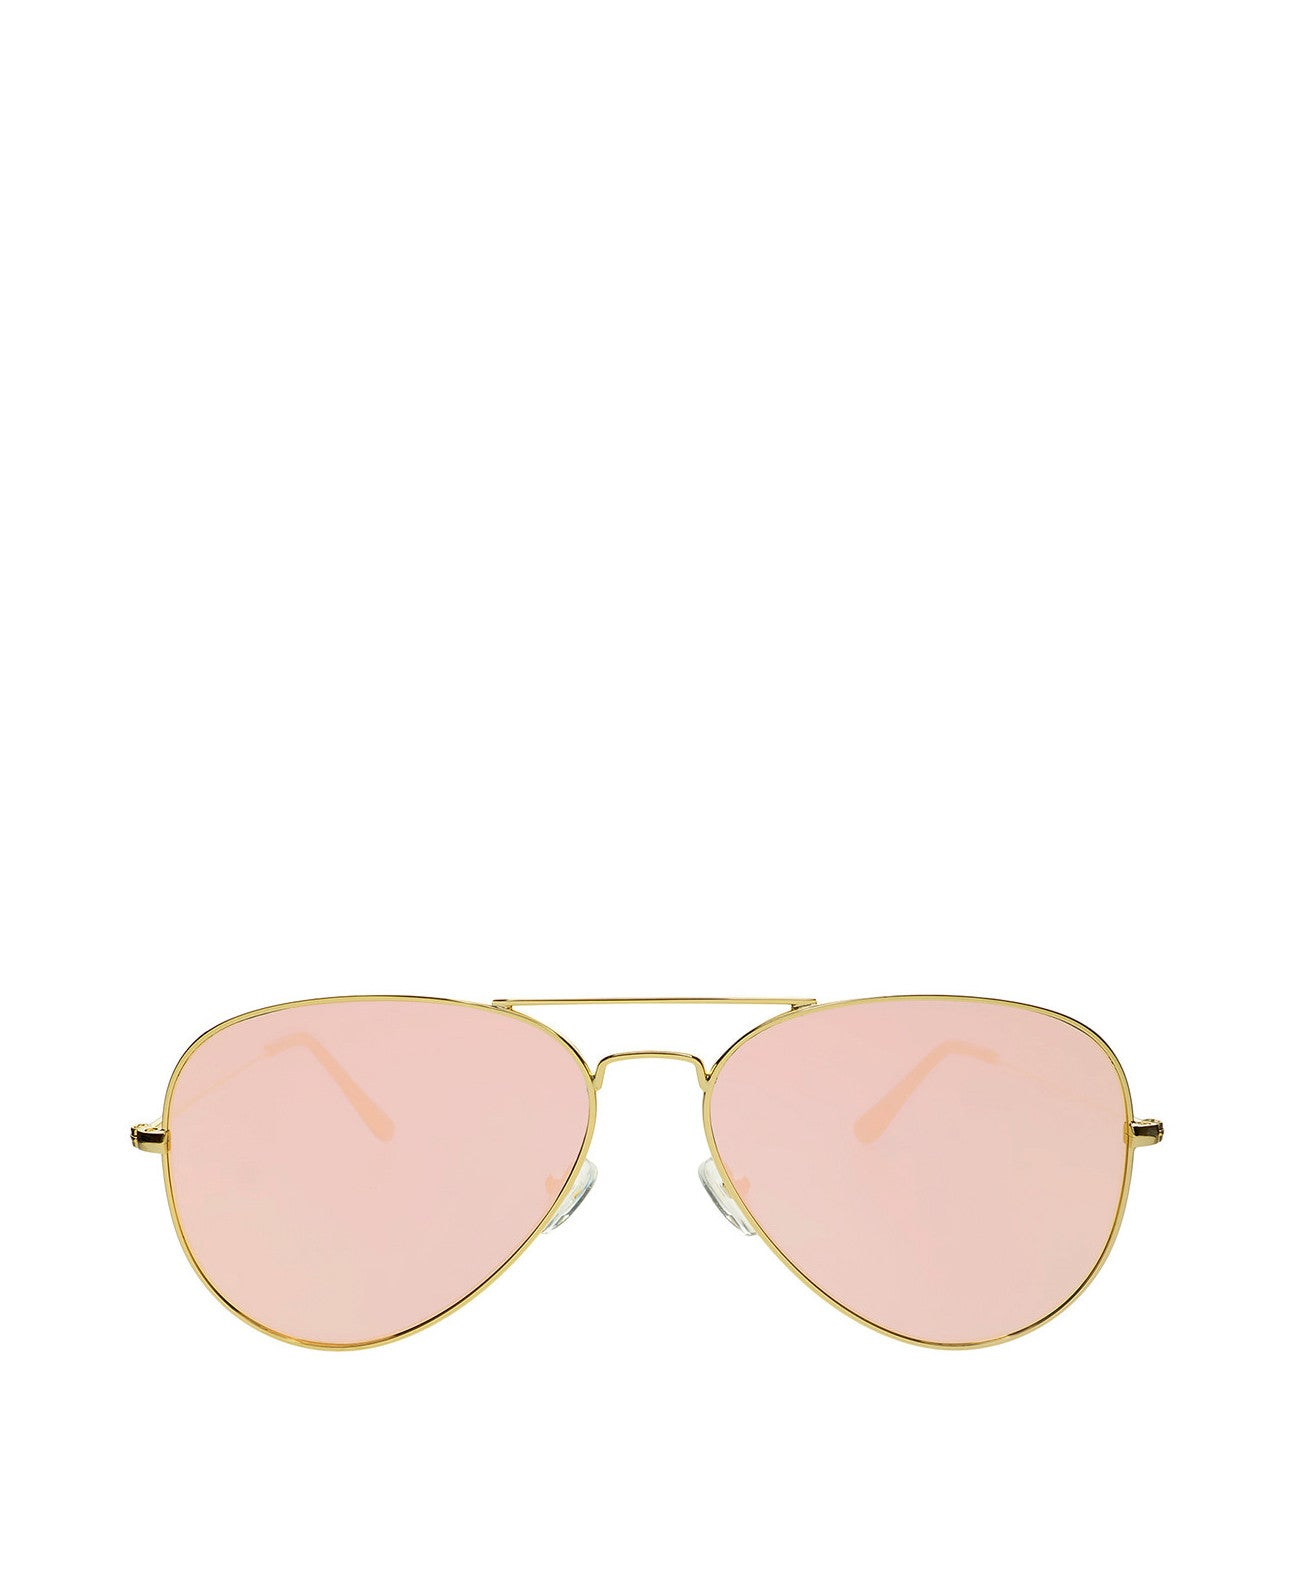 Mango-Pink Large Aviator Sunglasses